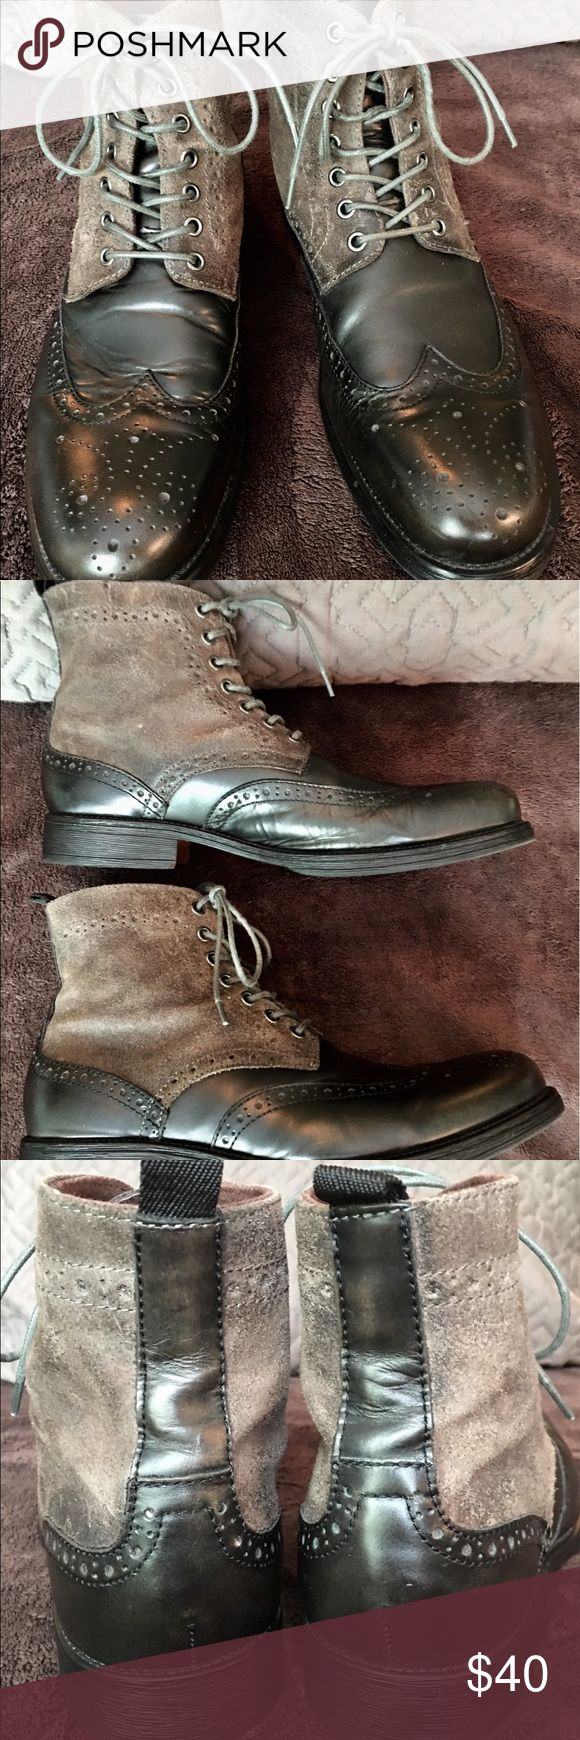 ASTON GREY COLLECTION BOOTS EUC ASTON GREY BROWN LEATHER BOOTS. Every man should have a fine pair of lace-up boots that convey an air of nostalgia and history. These are that pair of boots. A perfect combination of Edwardian era luxury with modern comfort. ASTON GREY Shoes Boots